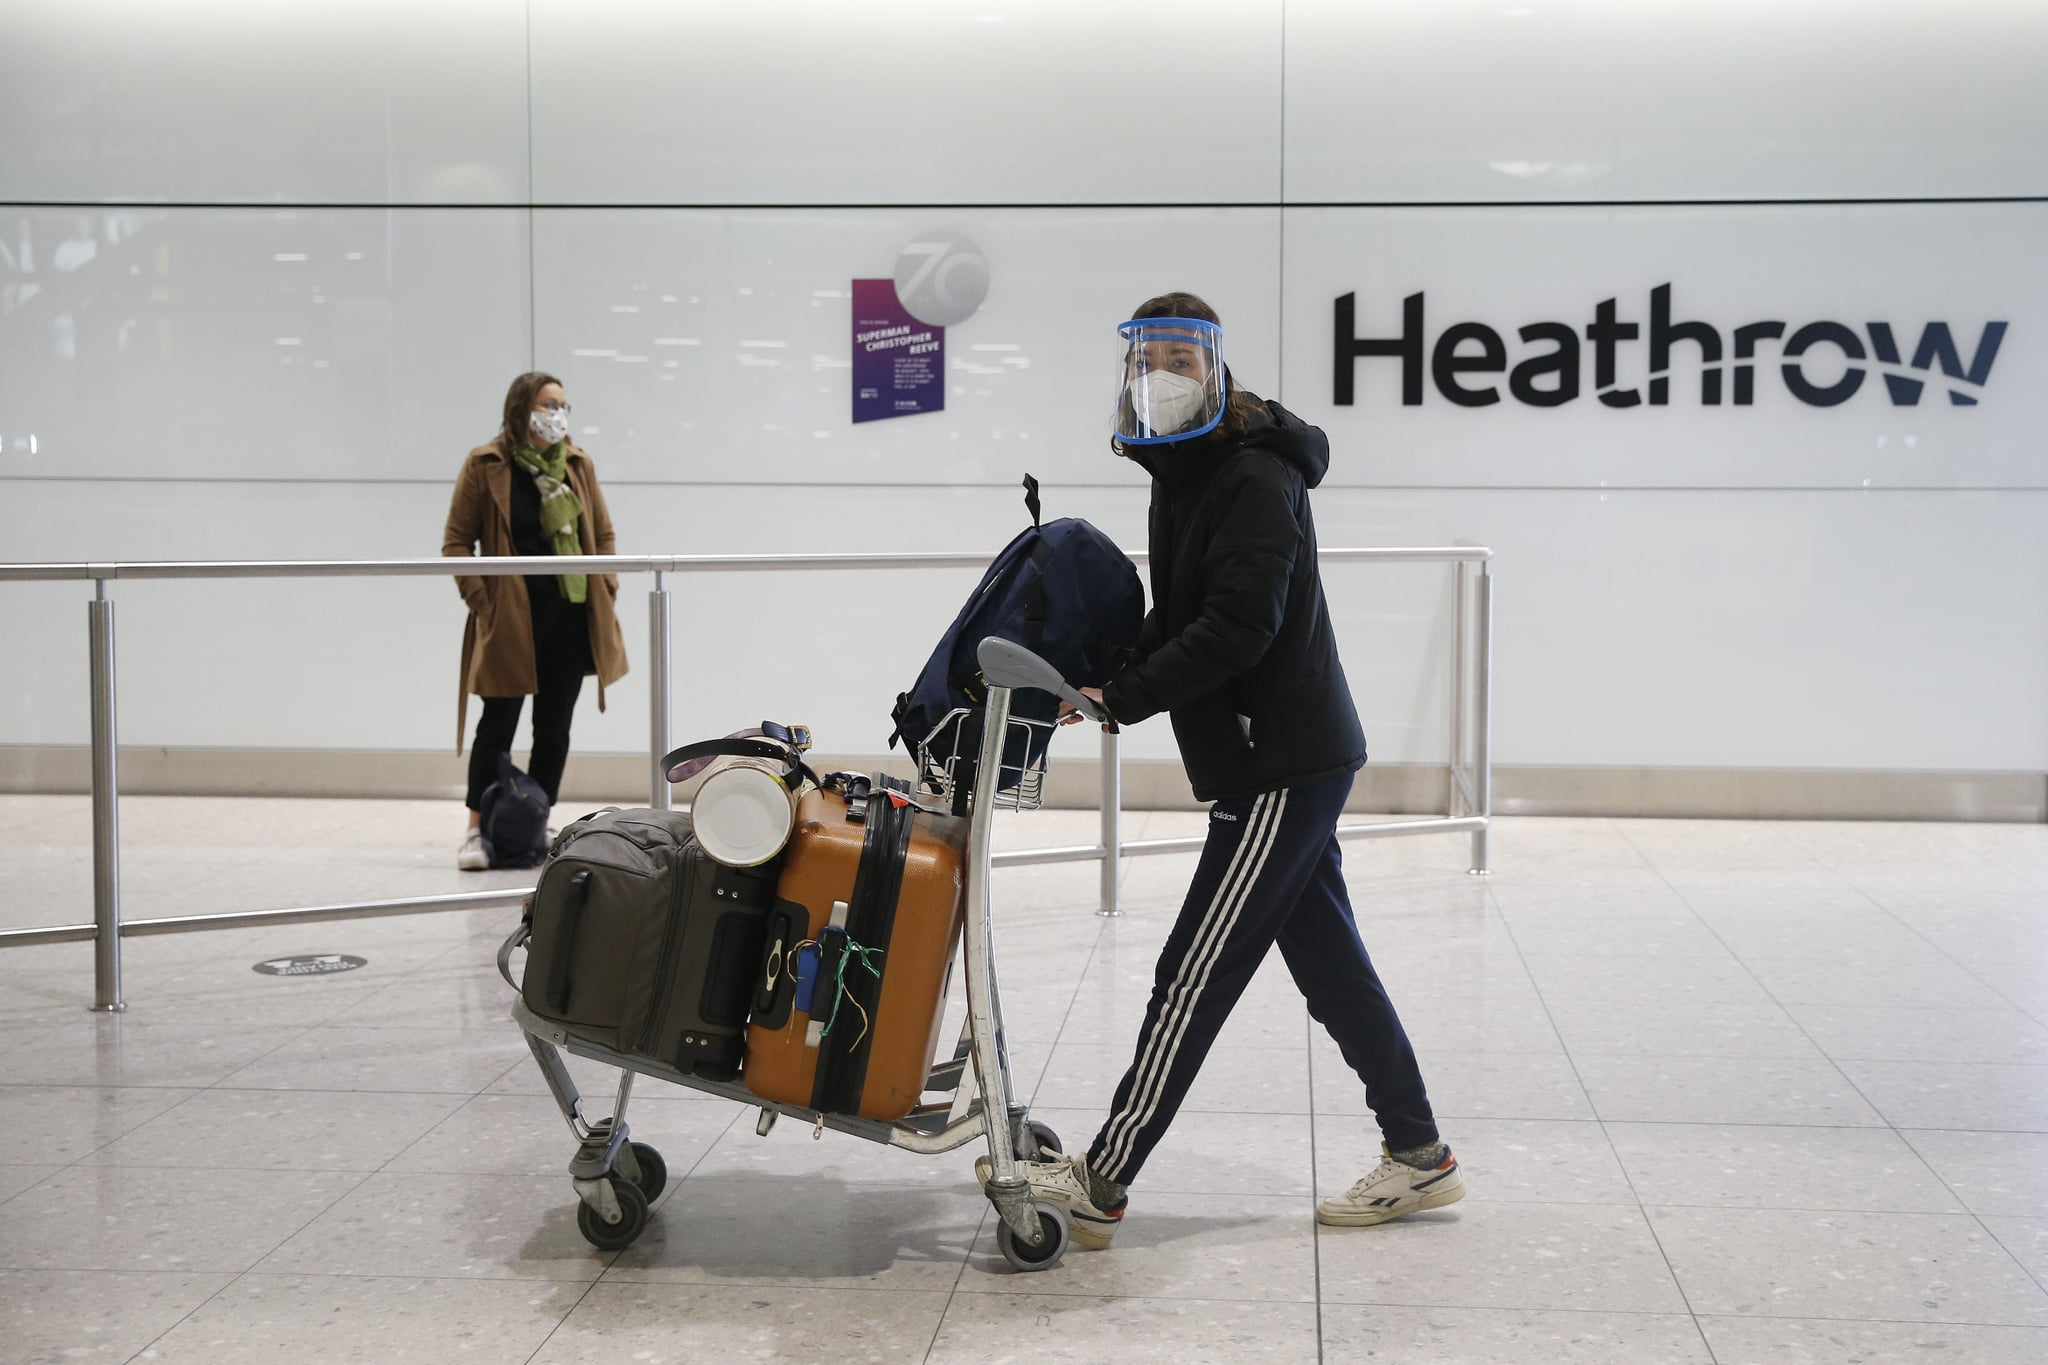 LONDON, ENGLAND - JANUARY 30: Travelers arrive at Heathrow Terminal 2 on January 30, 2021 in London, England. The UK government has added flights from the UAE to the